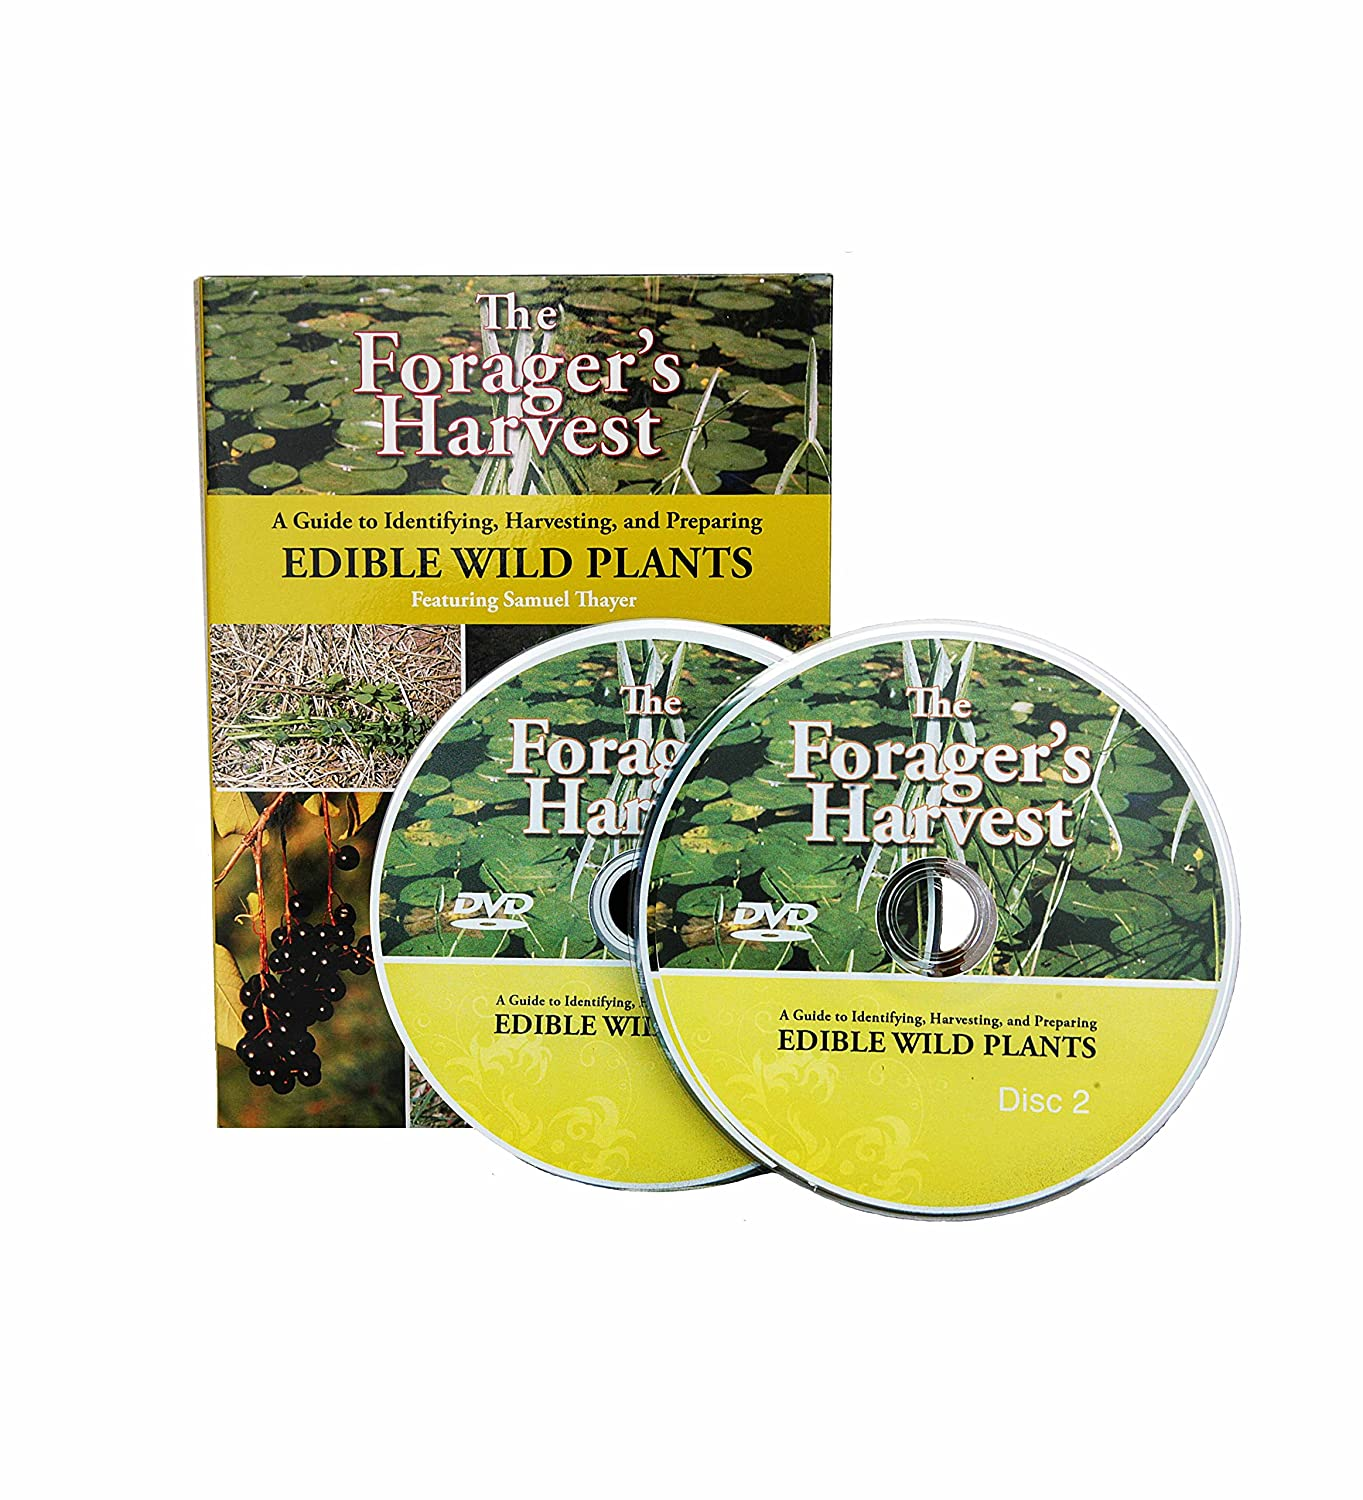 Amazon.com: The Forager's Harvest DVD: A Guide to Identifying, Harvesting,  and Preparing Edible Wild Plants: Samuel Thayer: Movies & TV